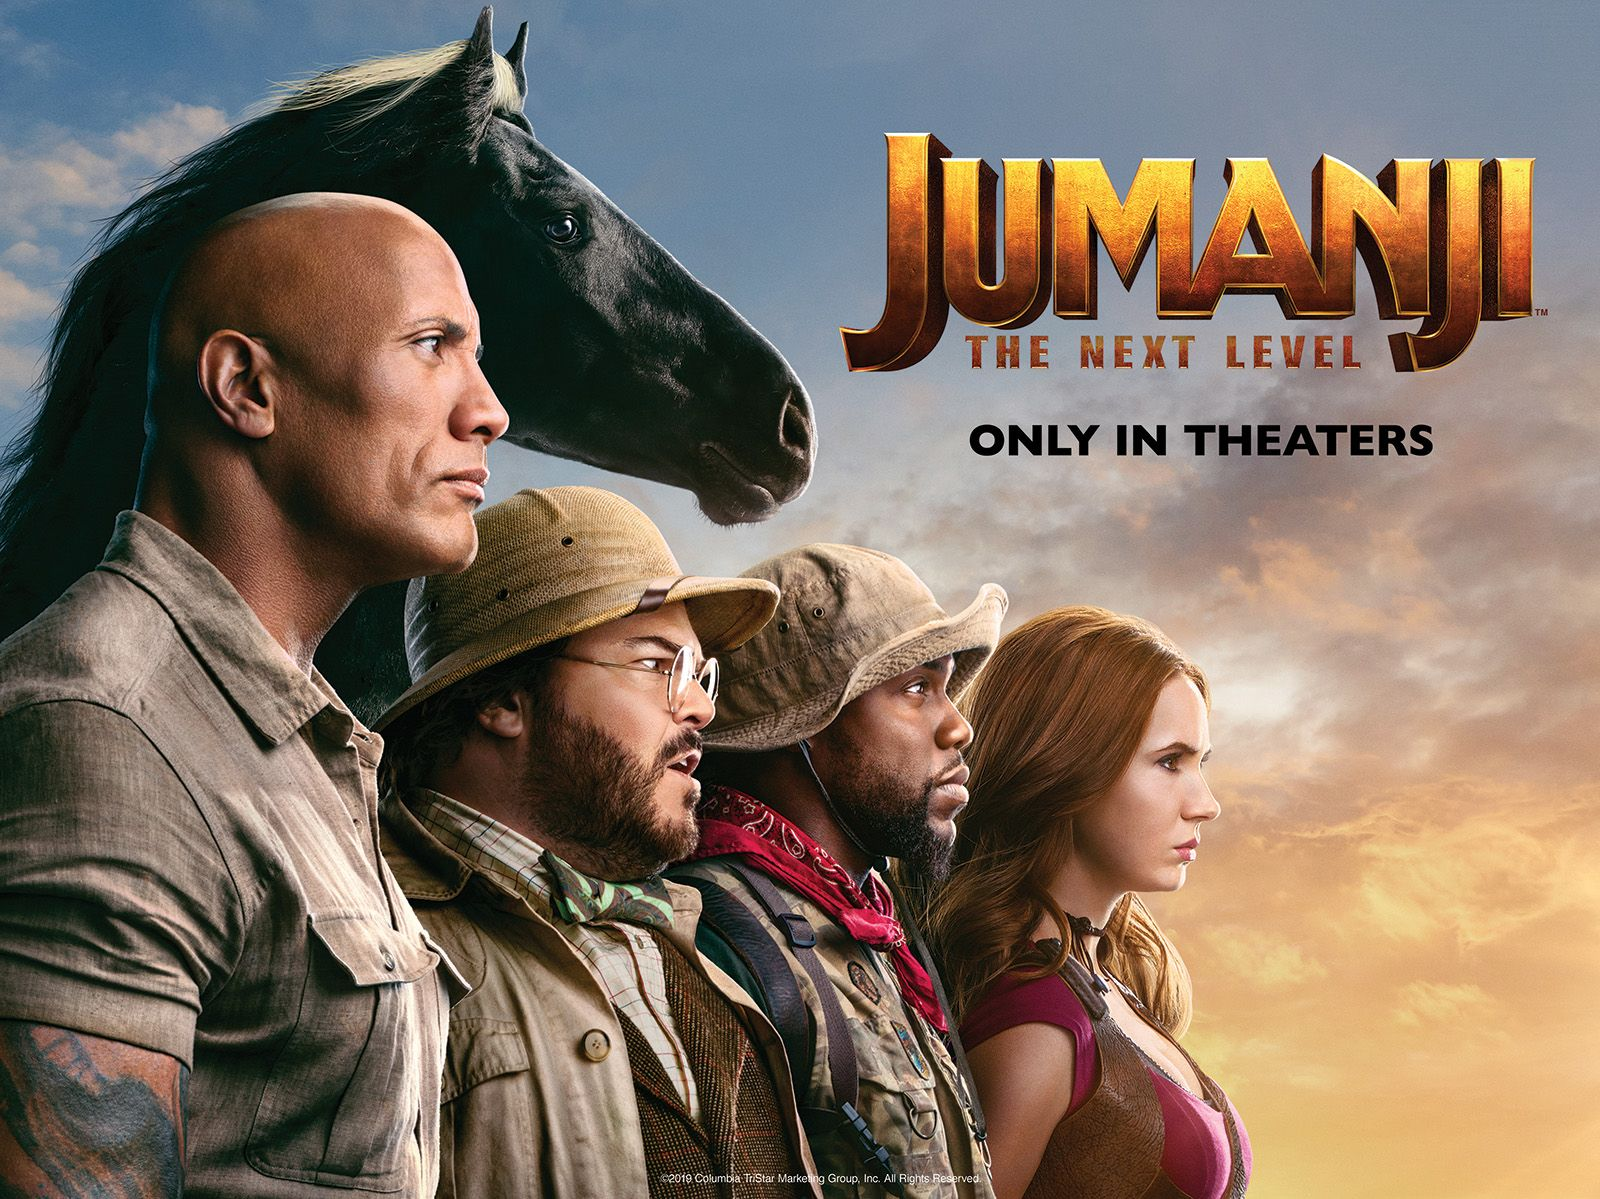 Zaxby's teams up with Sony Pictures for 'Jumanji: The Next Level'